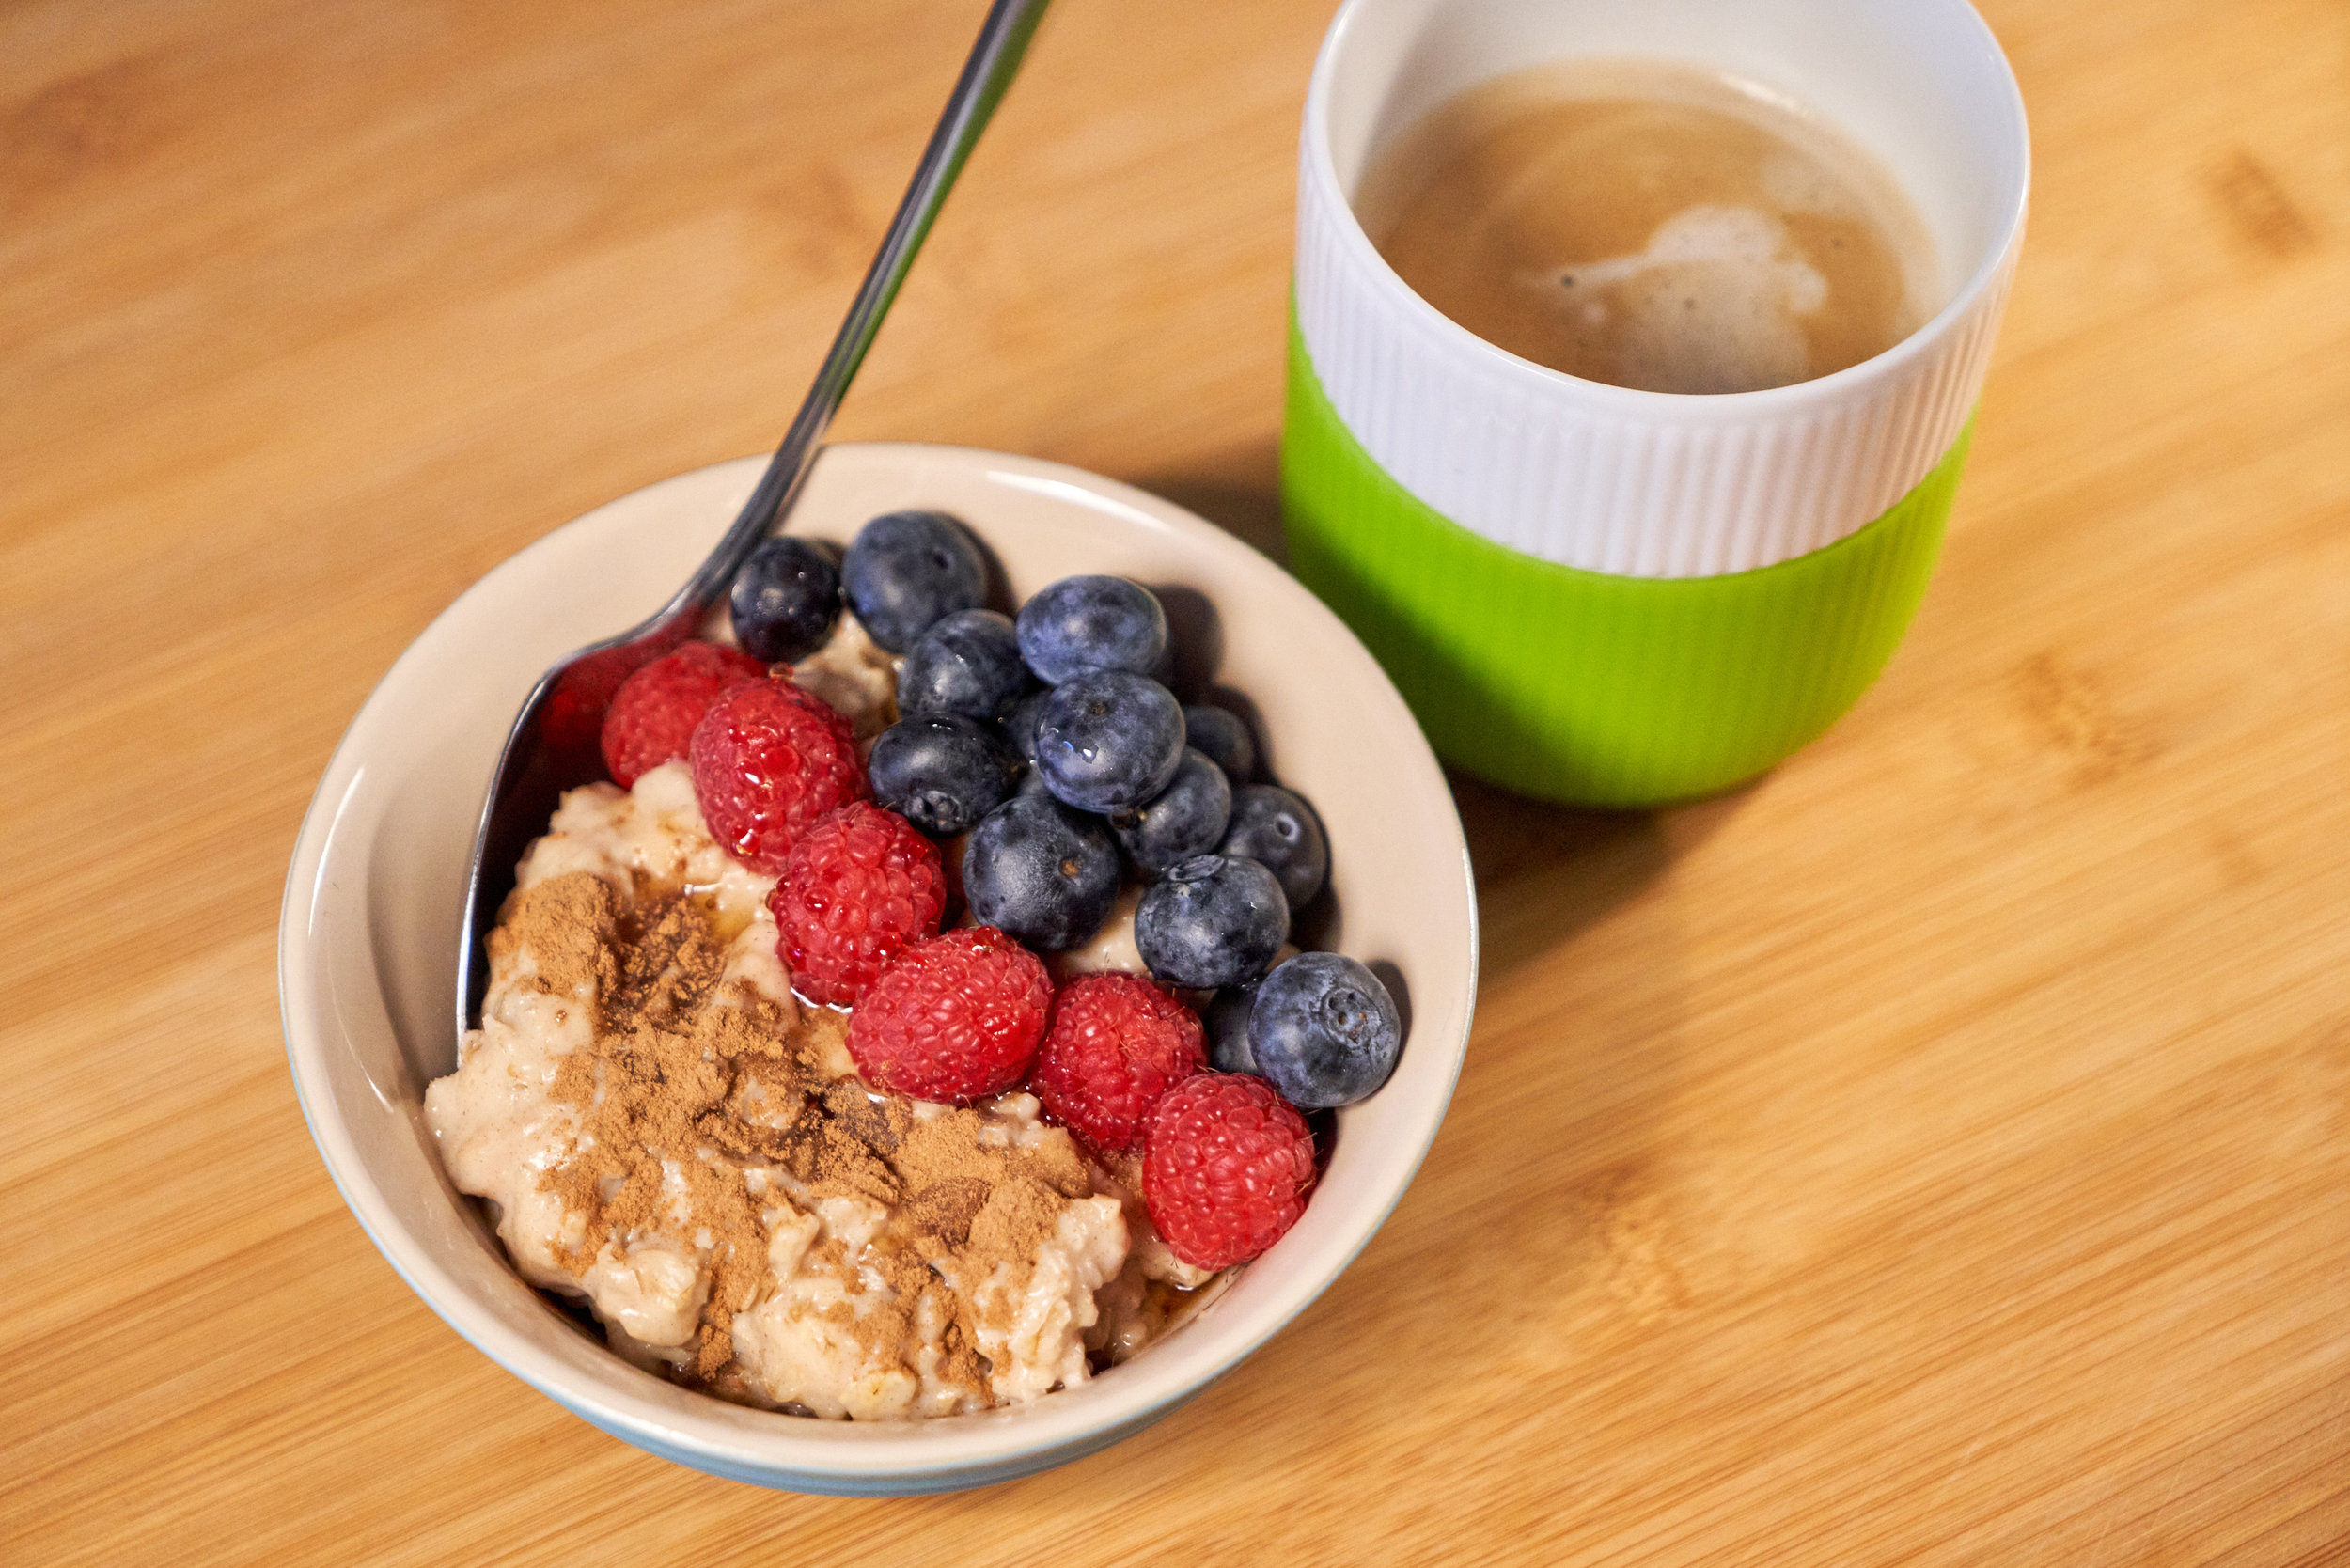 Meat-Free Monday Meal Prep | Full Day Meal Plan - breakfast: peanut butter porridge/oatmeal topped with fruits | In Carina's Kitchen